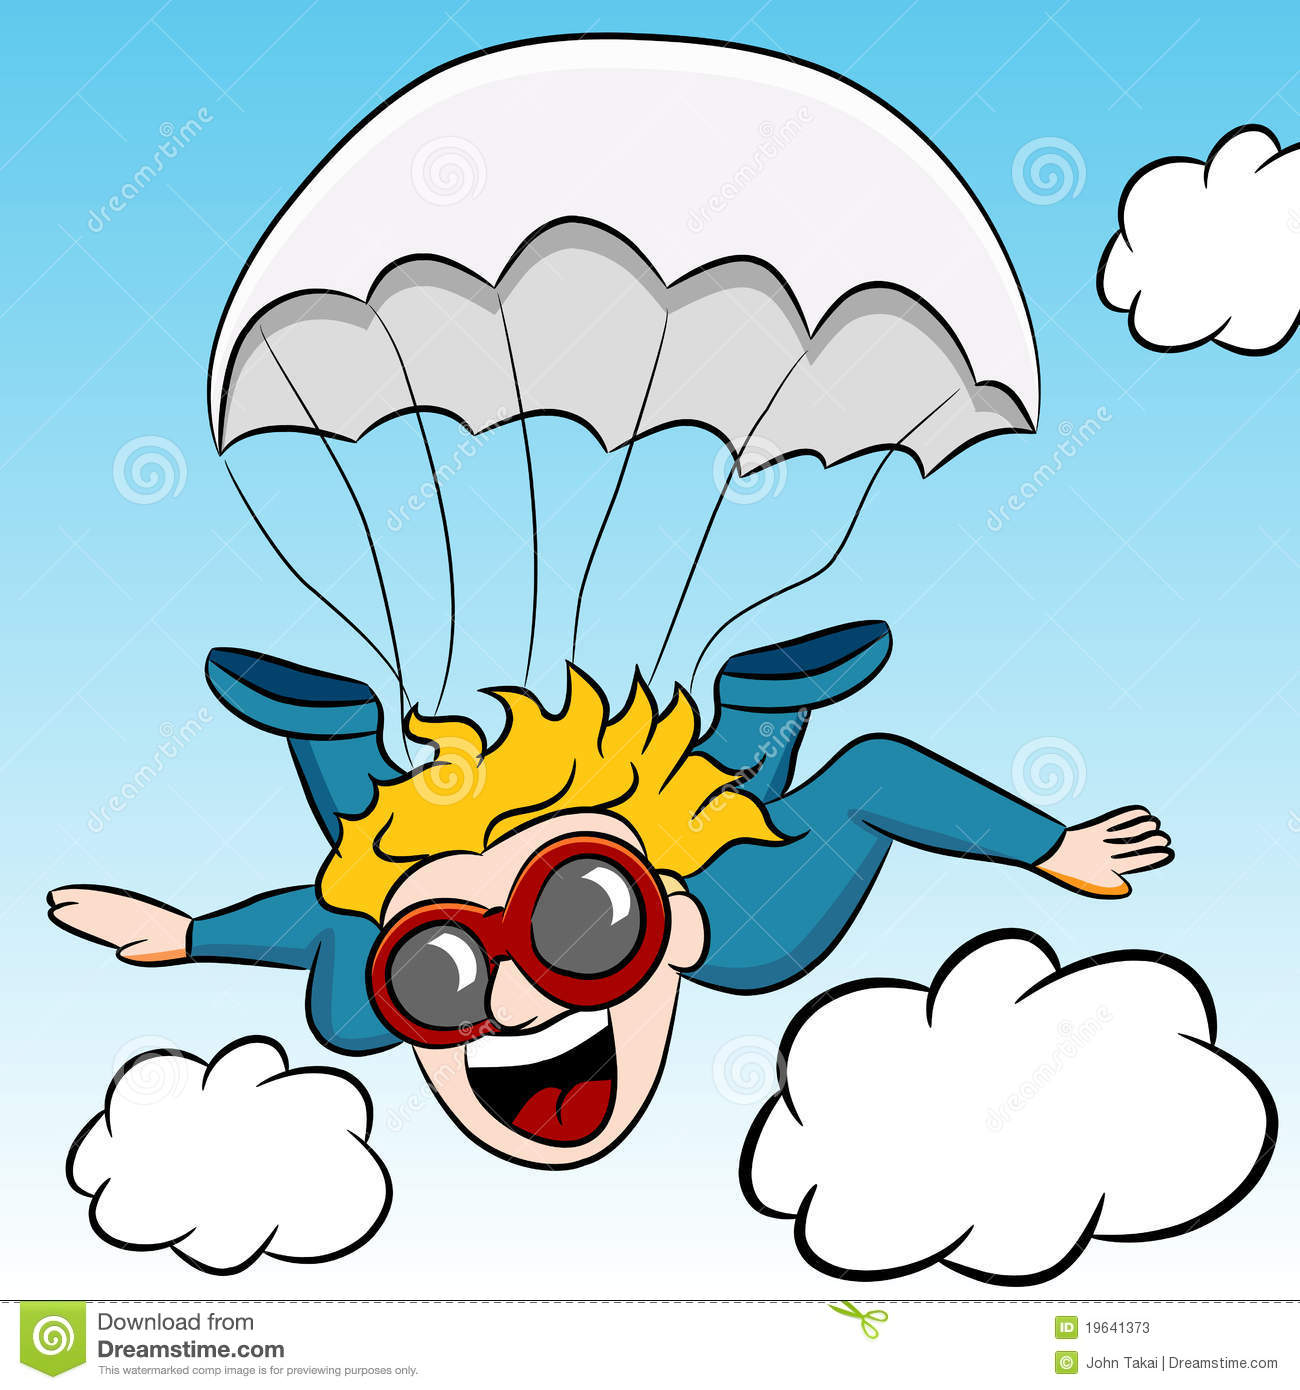 Adventure Clipart Stock Illustrations Vectors Skydiving.